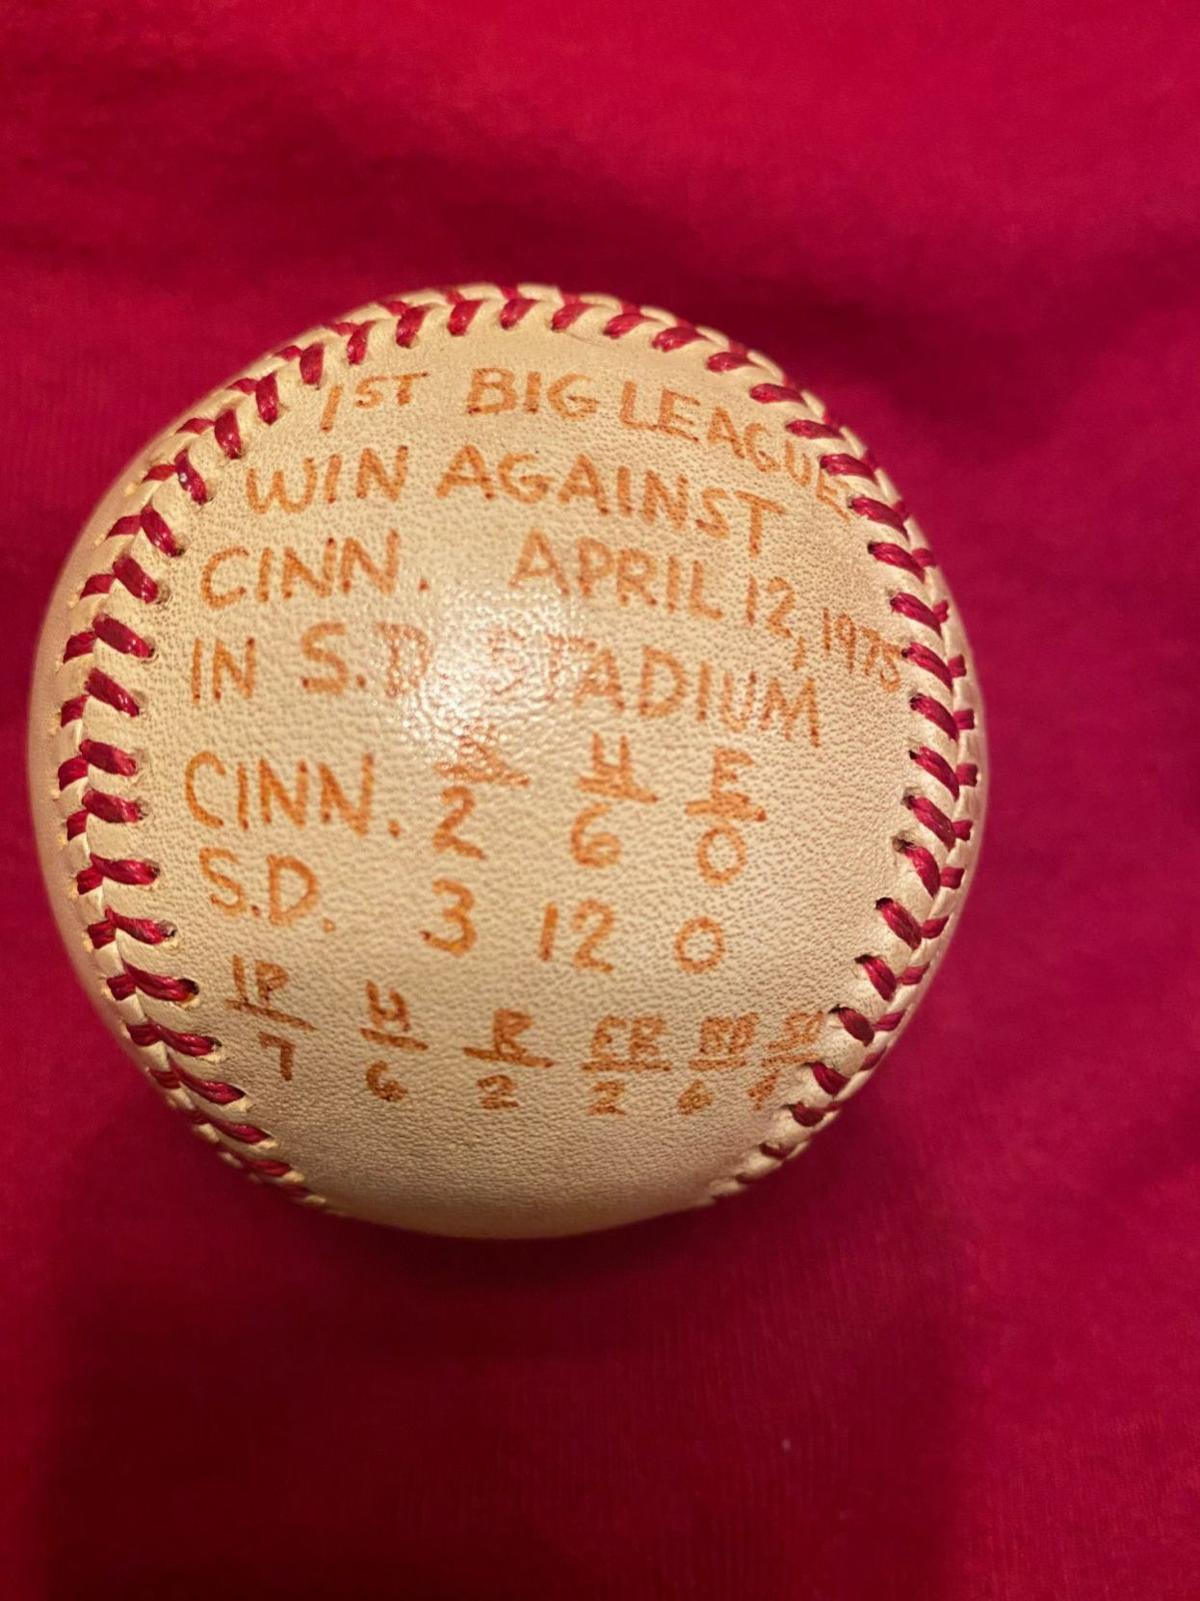 Joe McIntosh first-win baseball